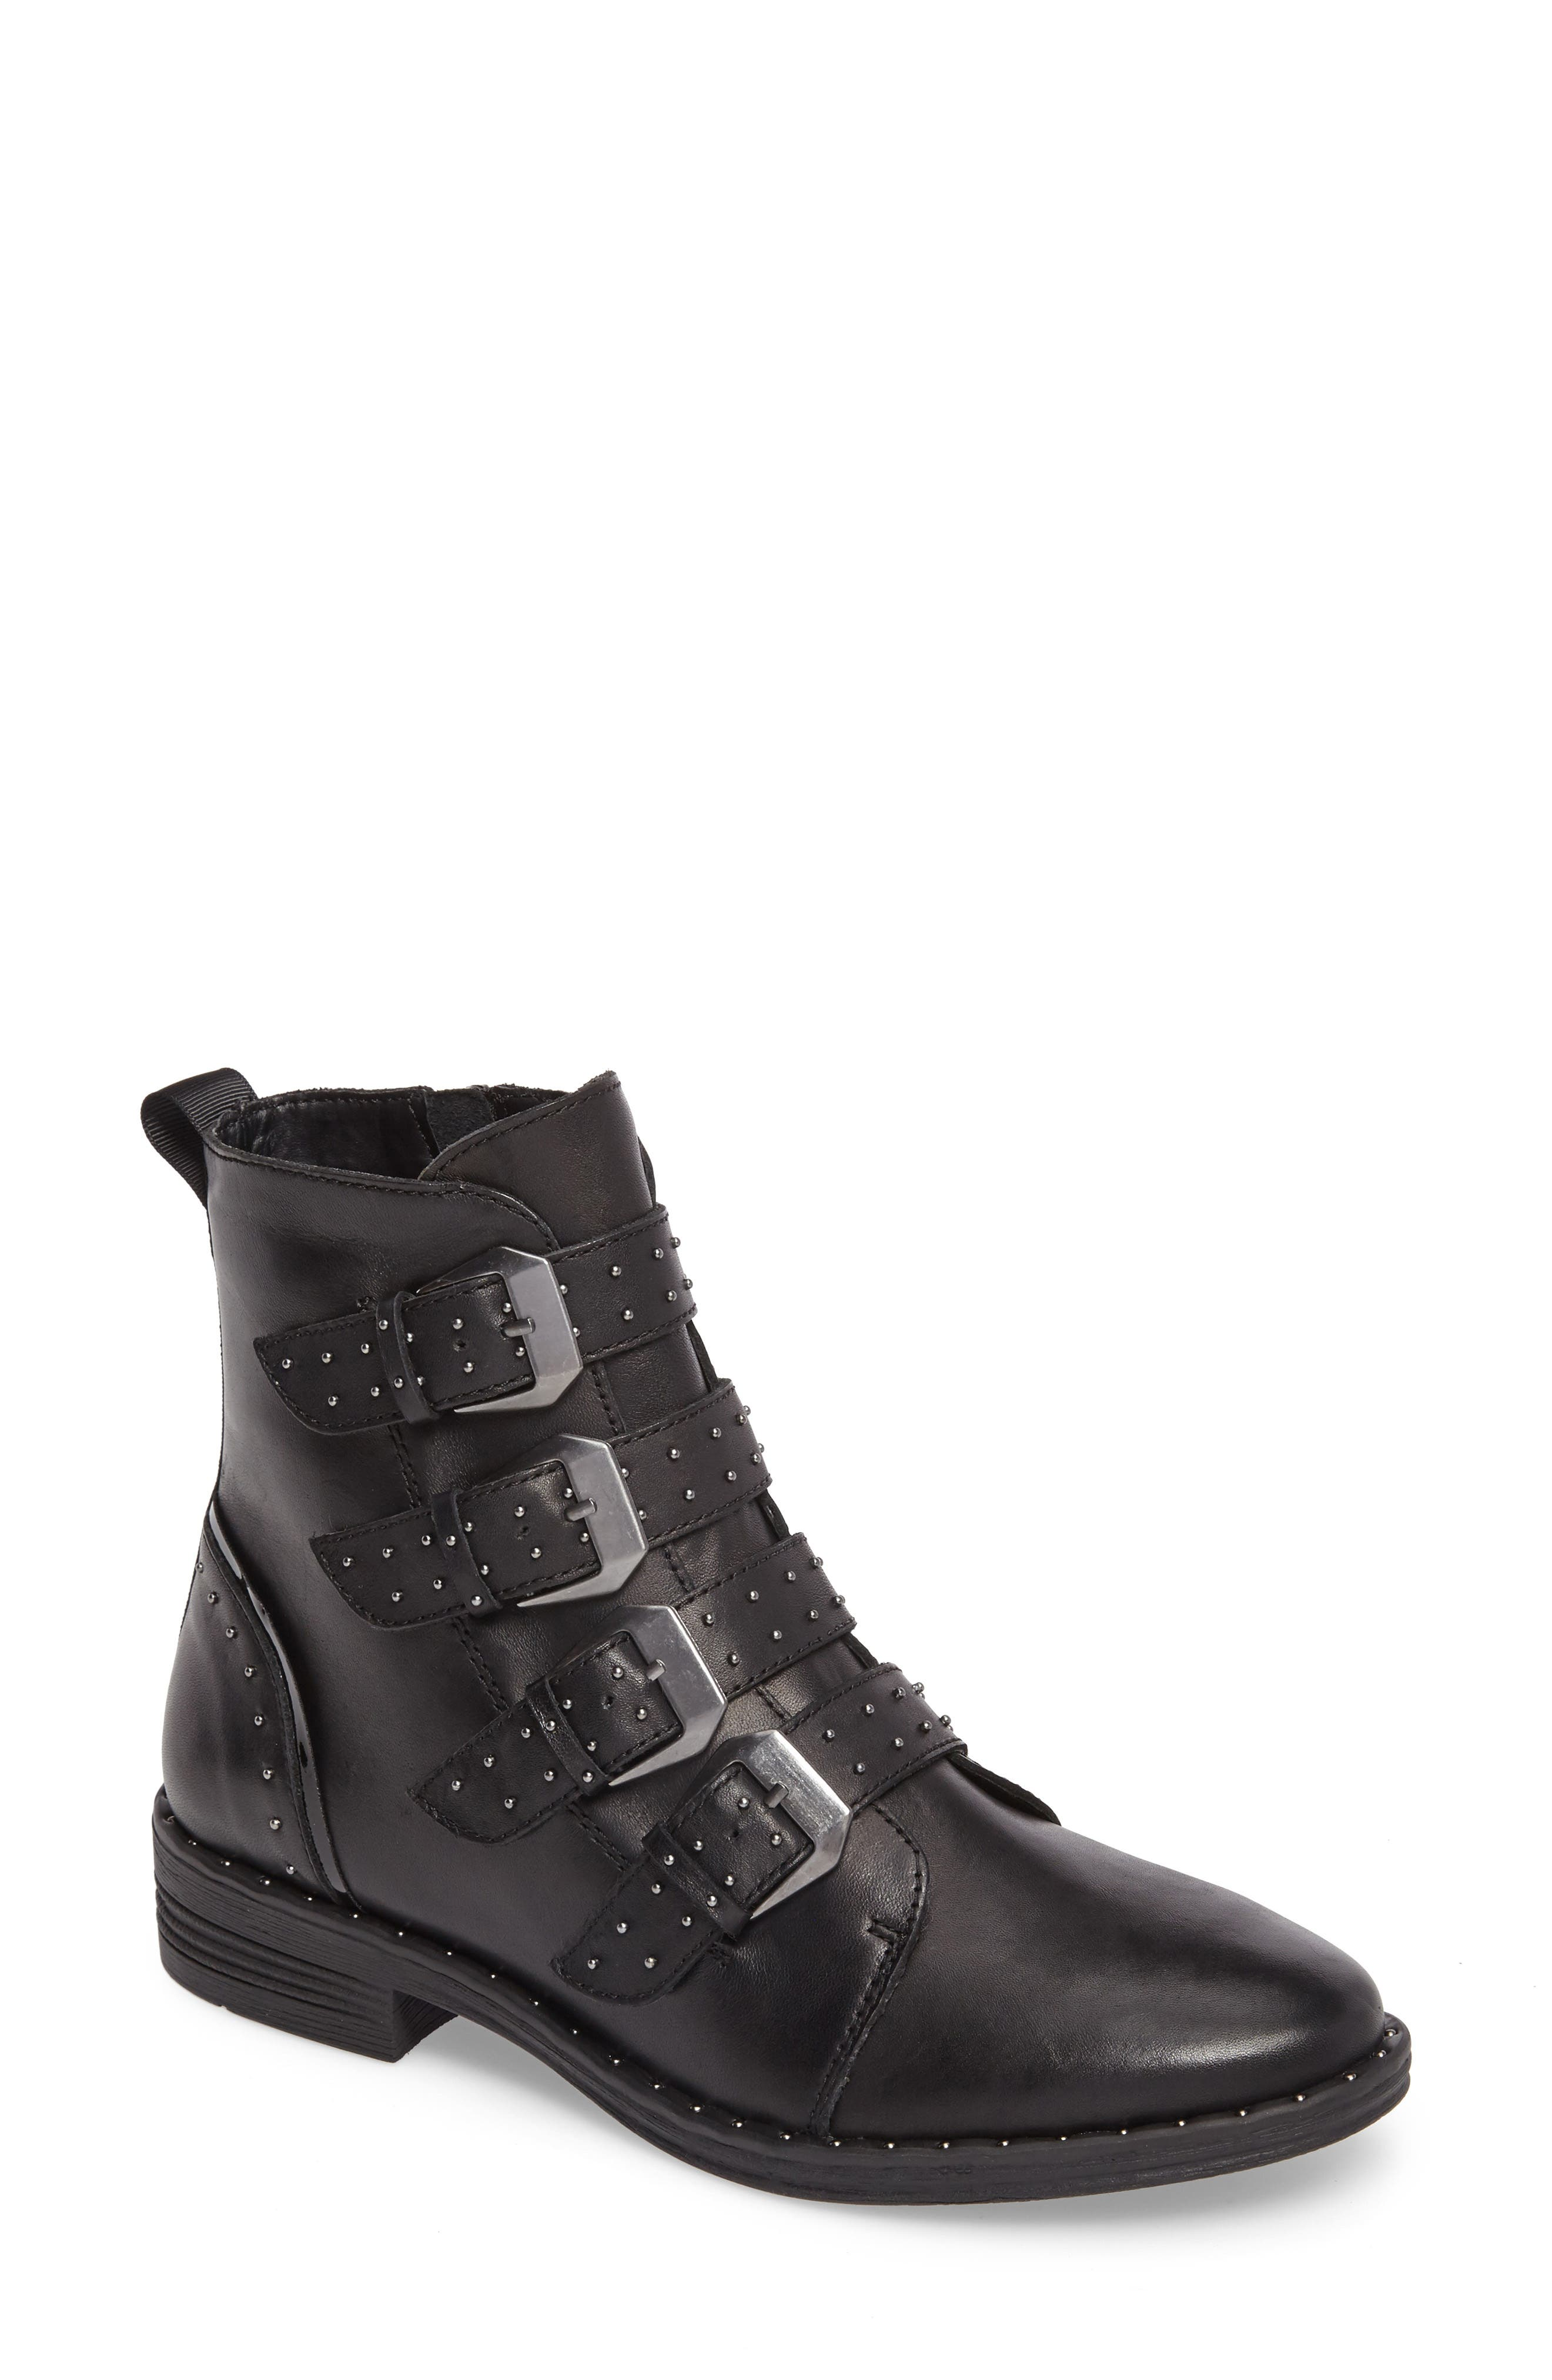 Alternate Image 1 Selected - Steve Madden Pursue Buckle Bootie (Women)